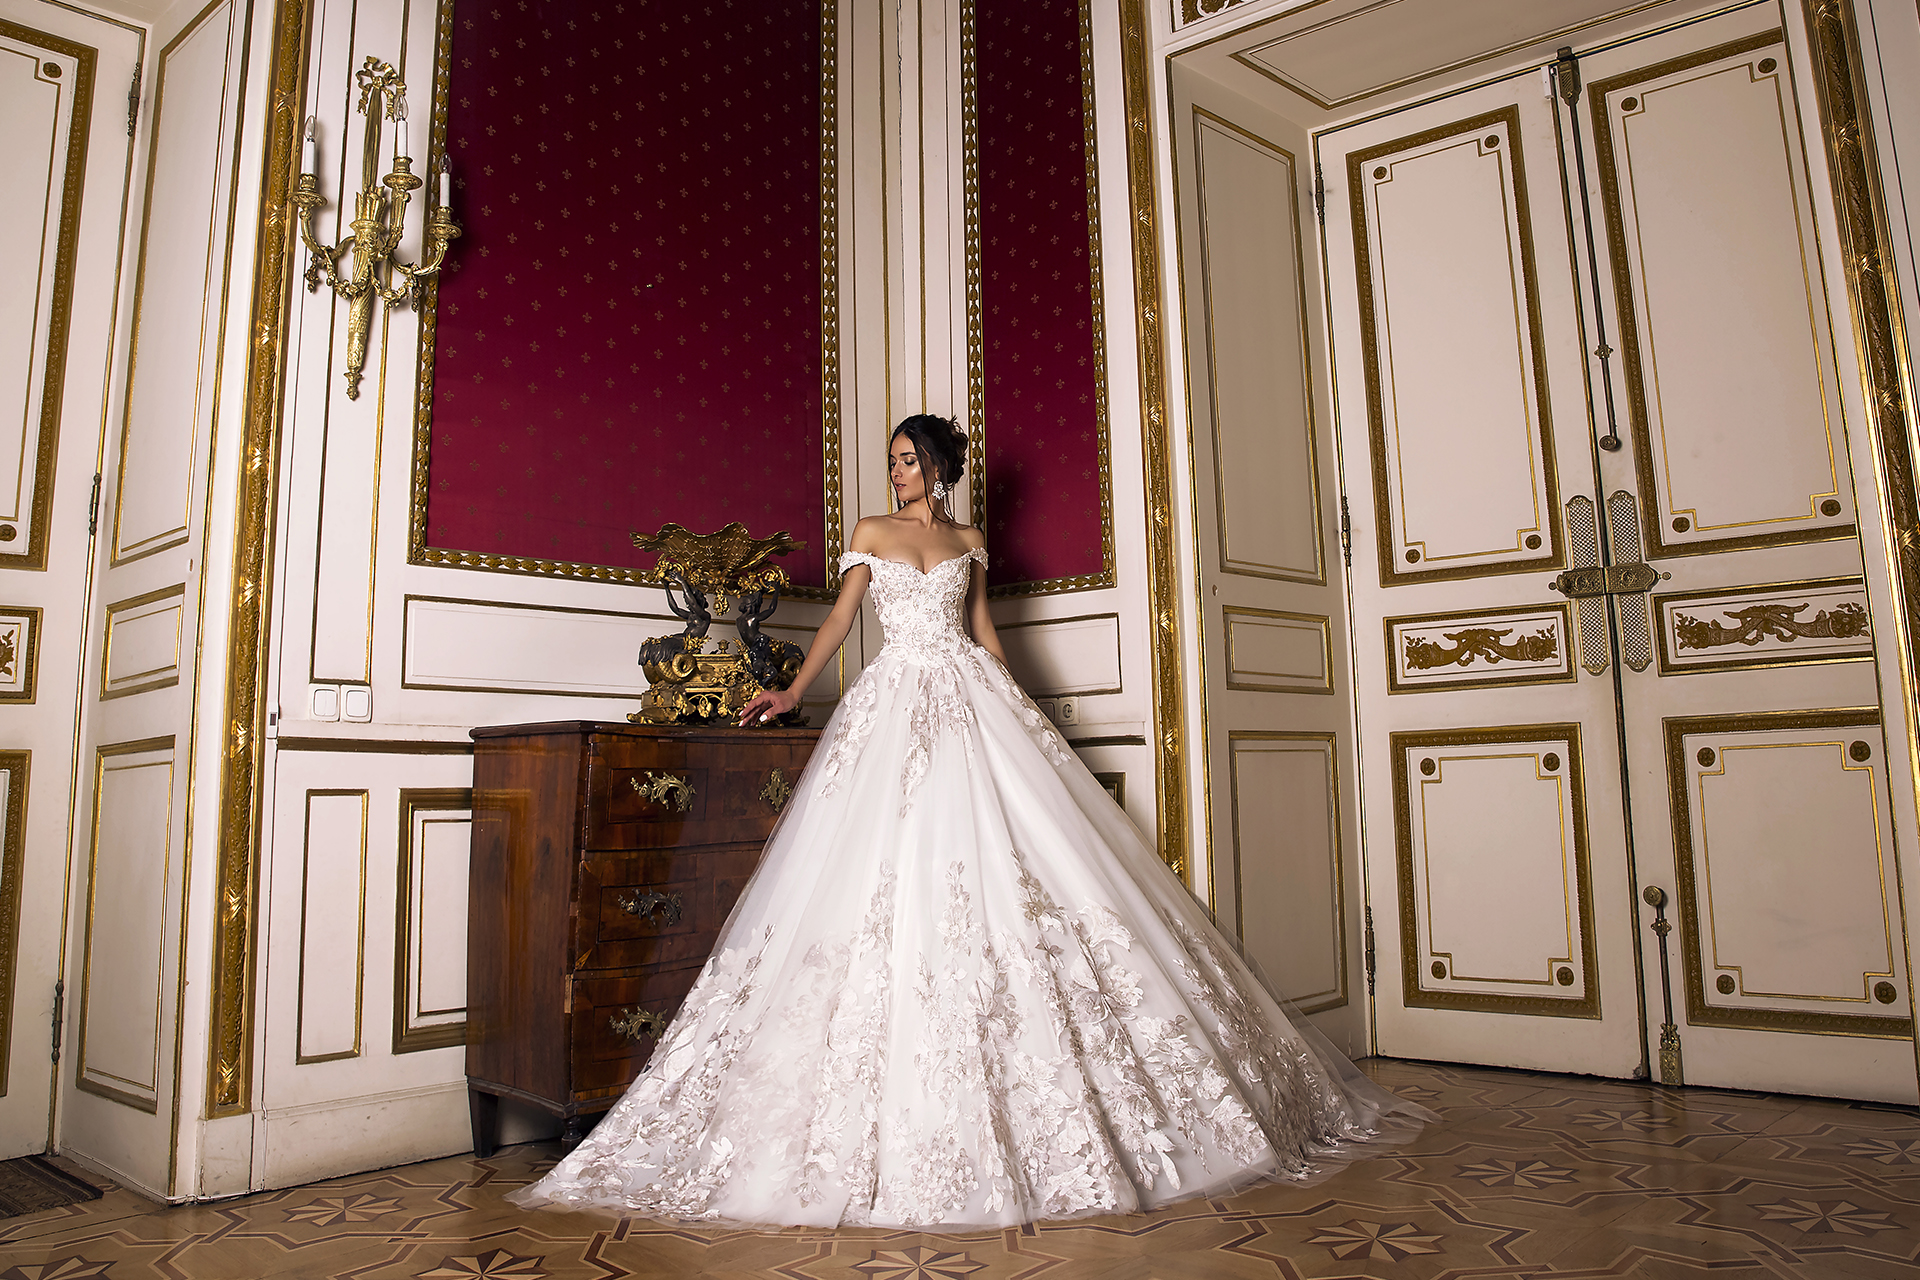 Wedding dress Flori  Silhouette  A Line  Color  Pink  Ivory  Neckline  Bateau (Boat Neck)  Sleeves  Off the Shoulder Sleeves  Train  With train - foto 3